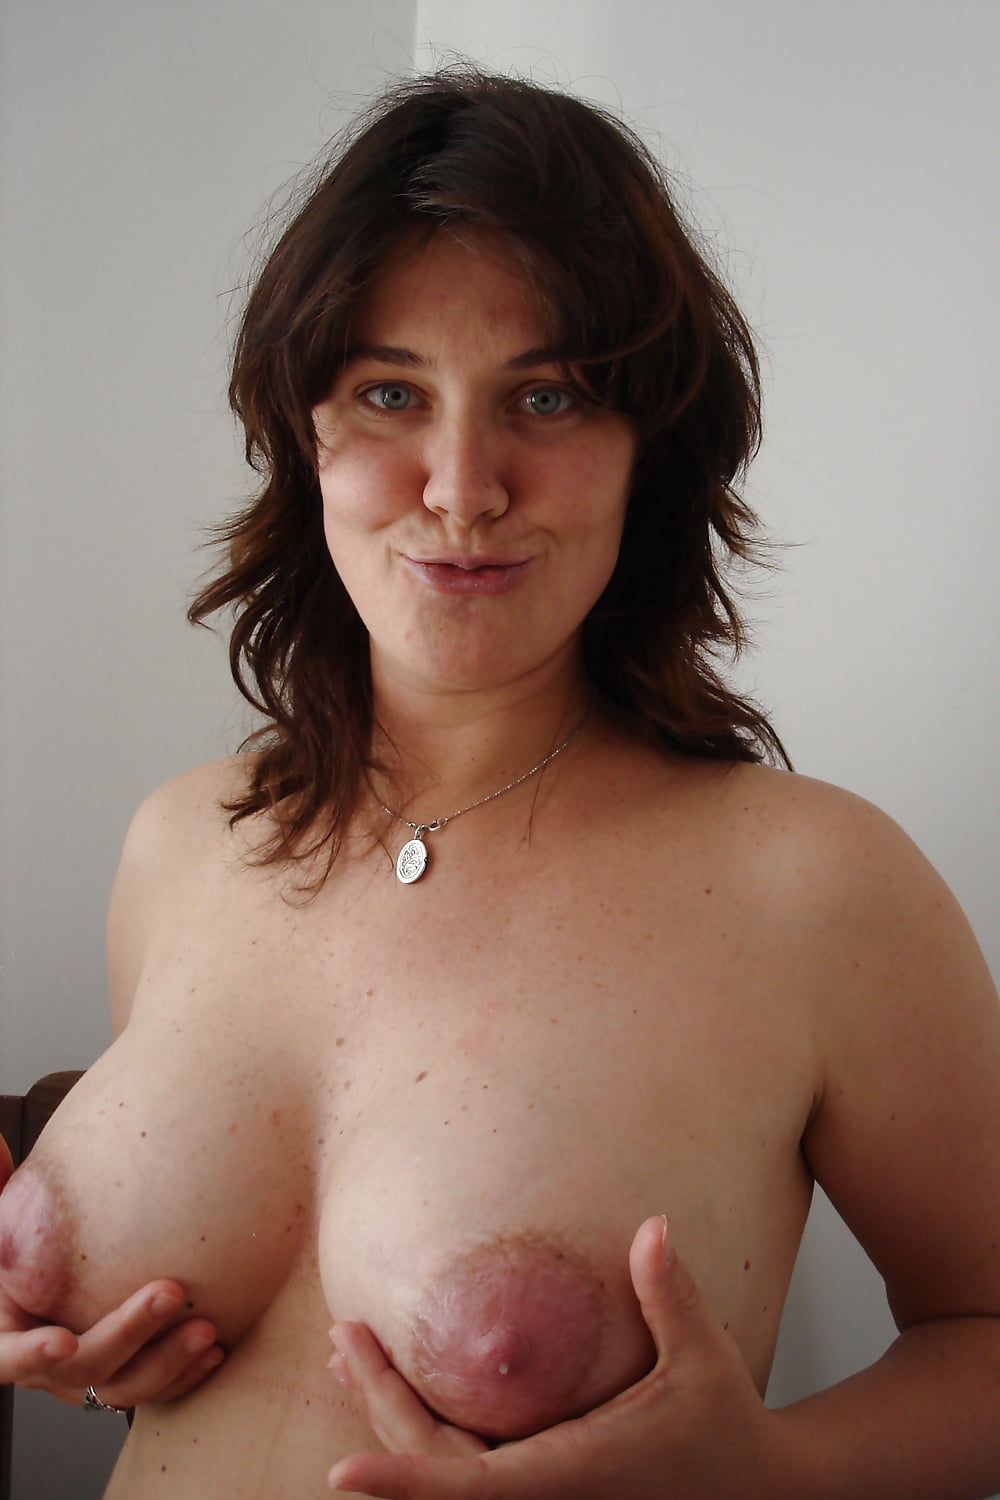 milf-amateur-breast-young-pakistani-nude-pussy